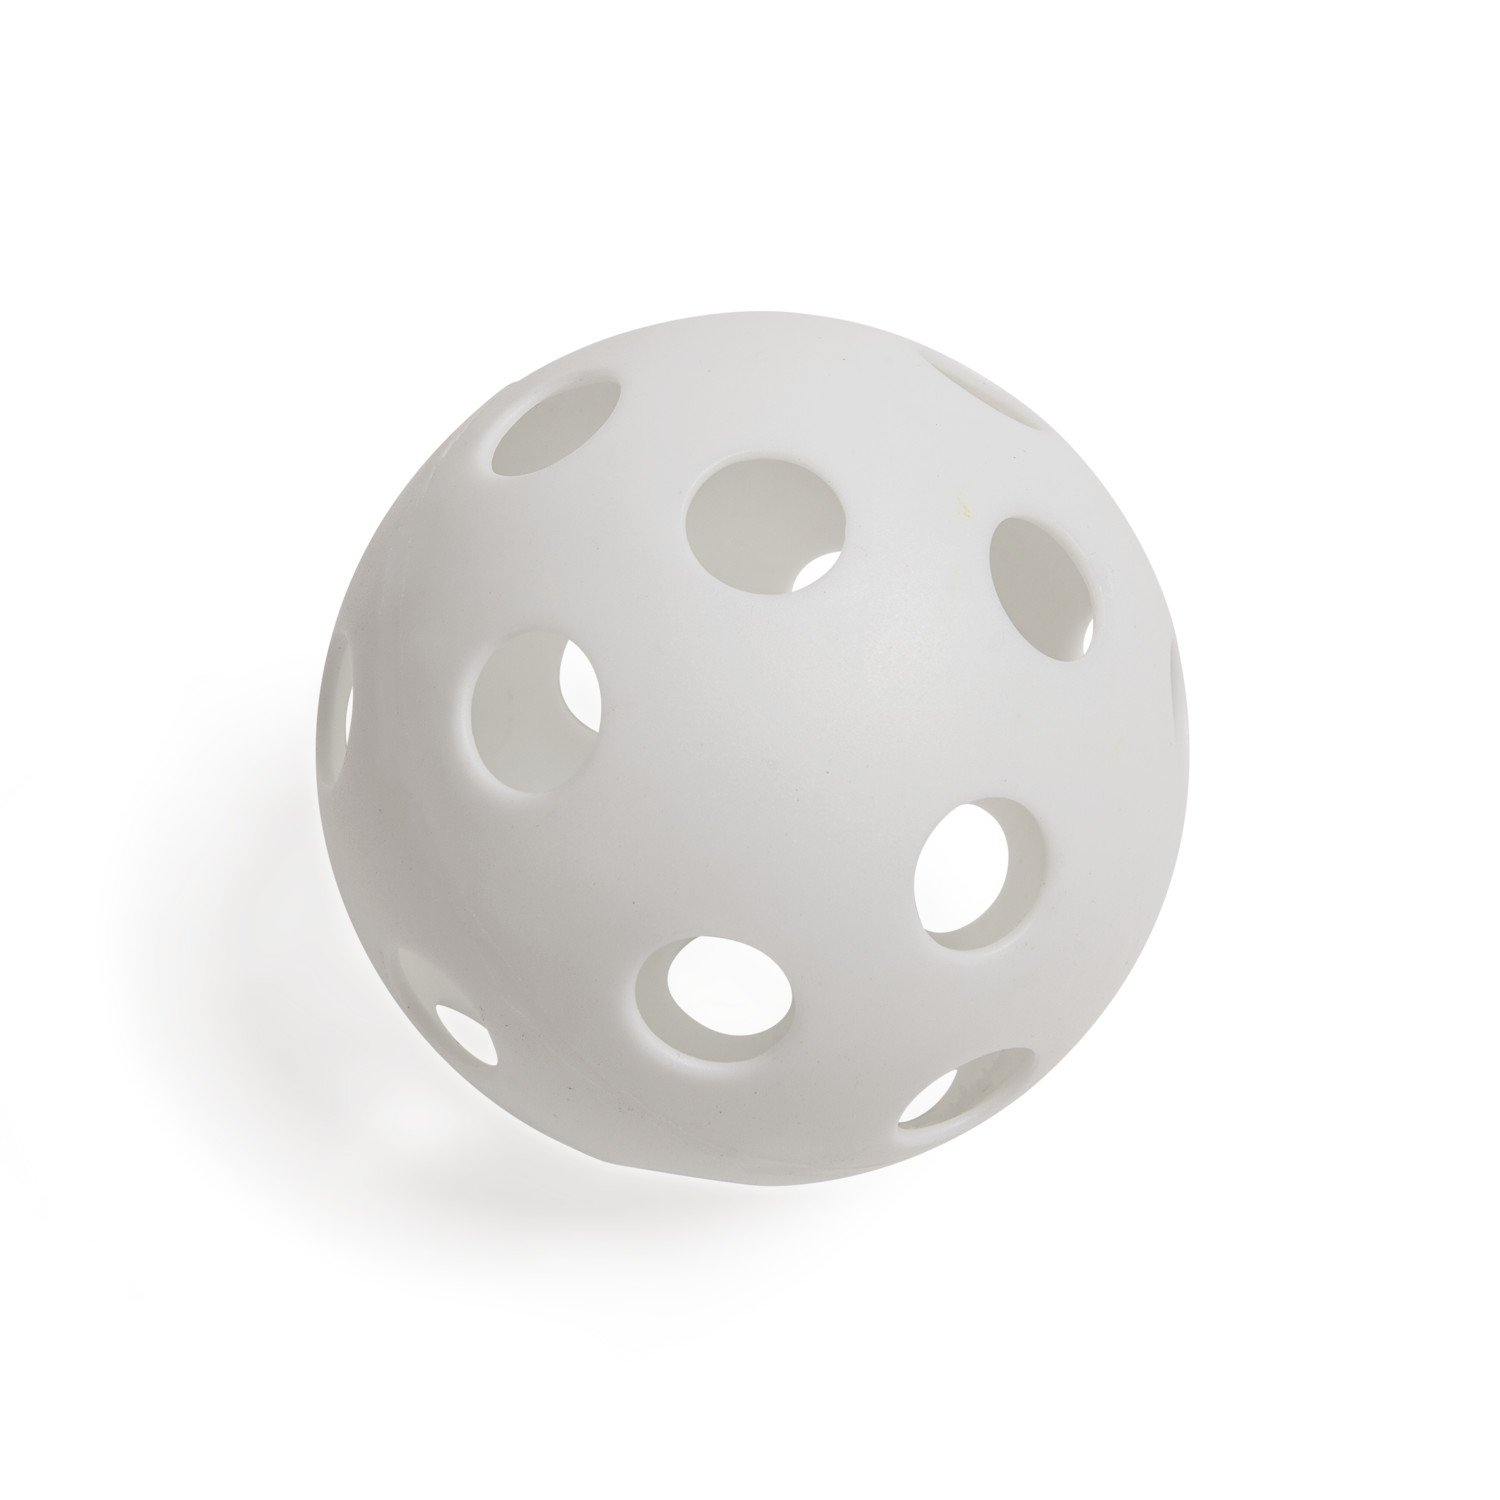 Champion Sports Scoop Ball Game: Classic Kids Outdoor Party Gear for Lawn, Camping & Beach by Champion Sports (Image #4)